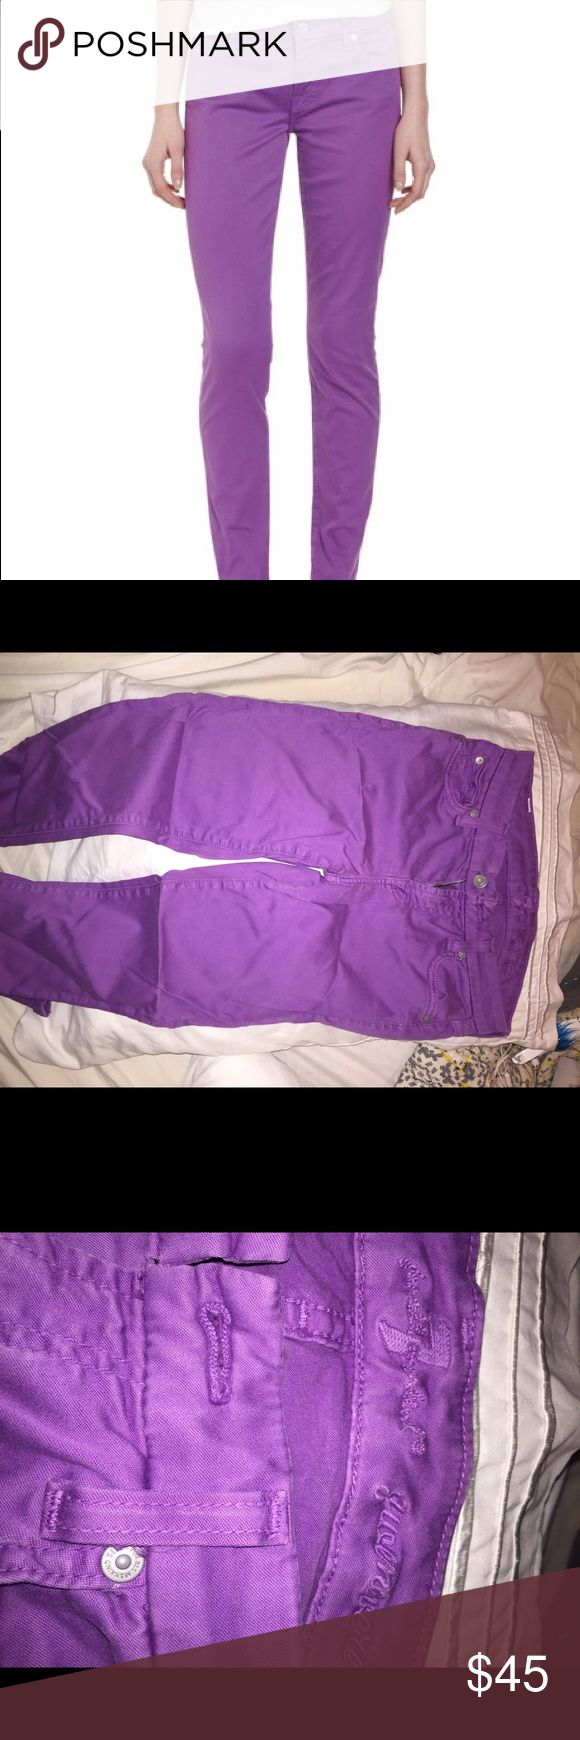 "7 for all mankind Women's Purple The Skinny Jeans Great condition minus a minor stain on one of the backside pockets as shown in photo. Fades into color of the jean and isn't super noticeable. Could potentially be fixed with heavy washing. Size 26. * 7.5"" rise. 30"" inseam. * 10"" leg opening. * Fabrication: Stretch denim. * 98% cotton/2% spandex. 7 For All Mankind Jeans Skinny"